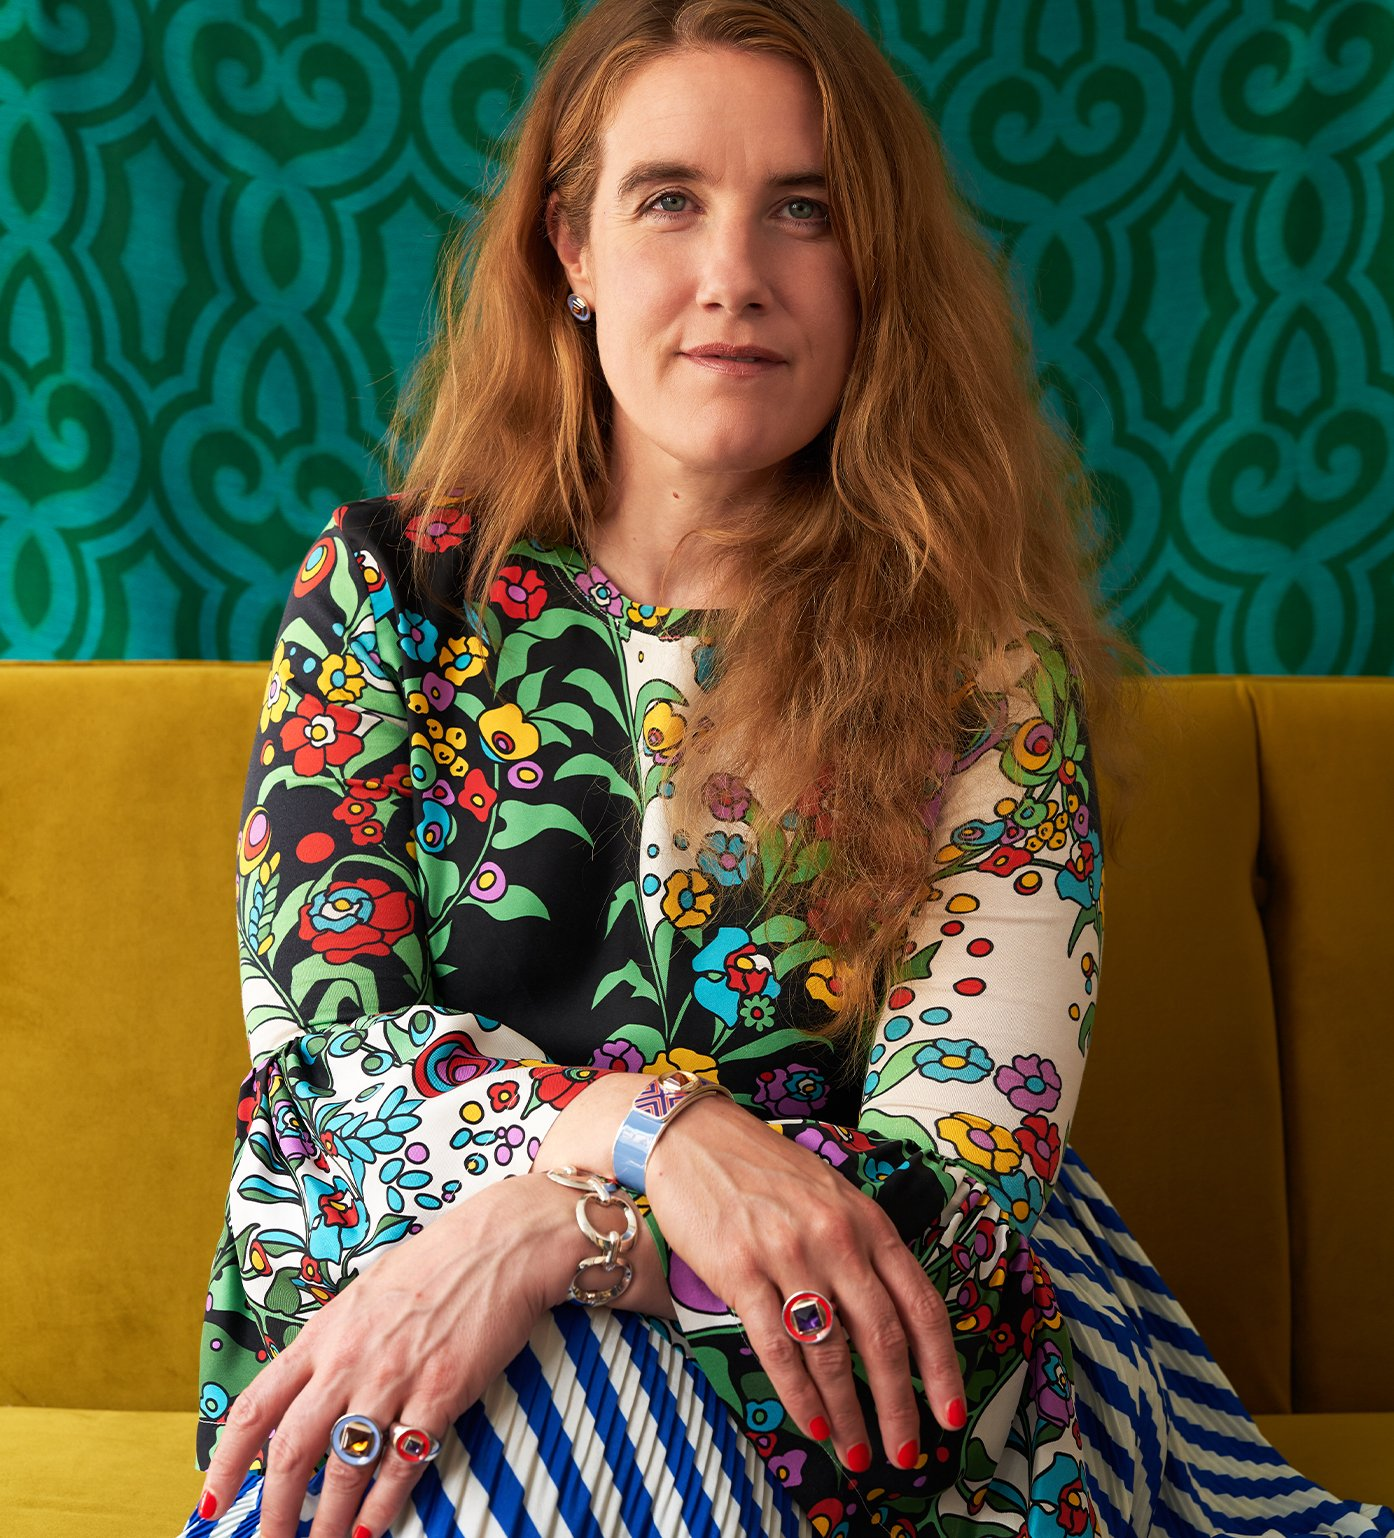 Portrait of Alice Cicolini. She has light eyes, fair skin, and long reddish hair. She is wearing a colorful dress with a 70s-era floral pattern, and is wearing several of her Mad Mod jewely peices.